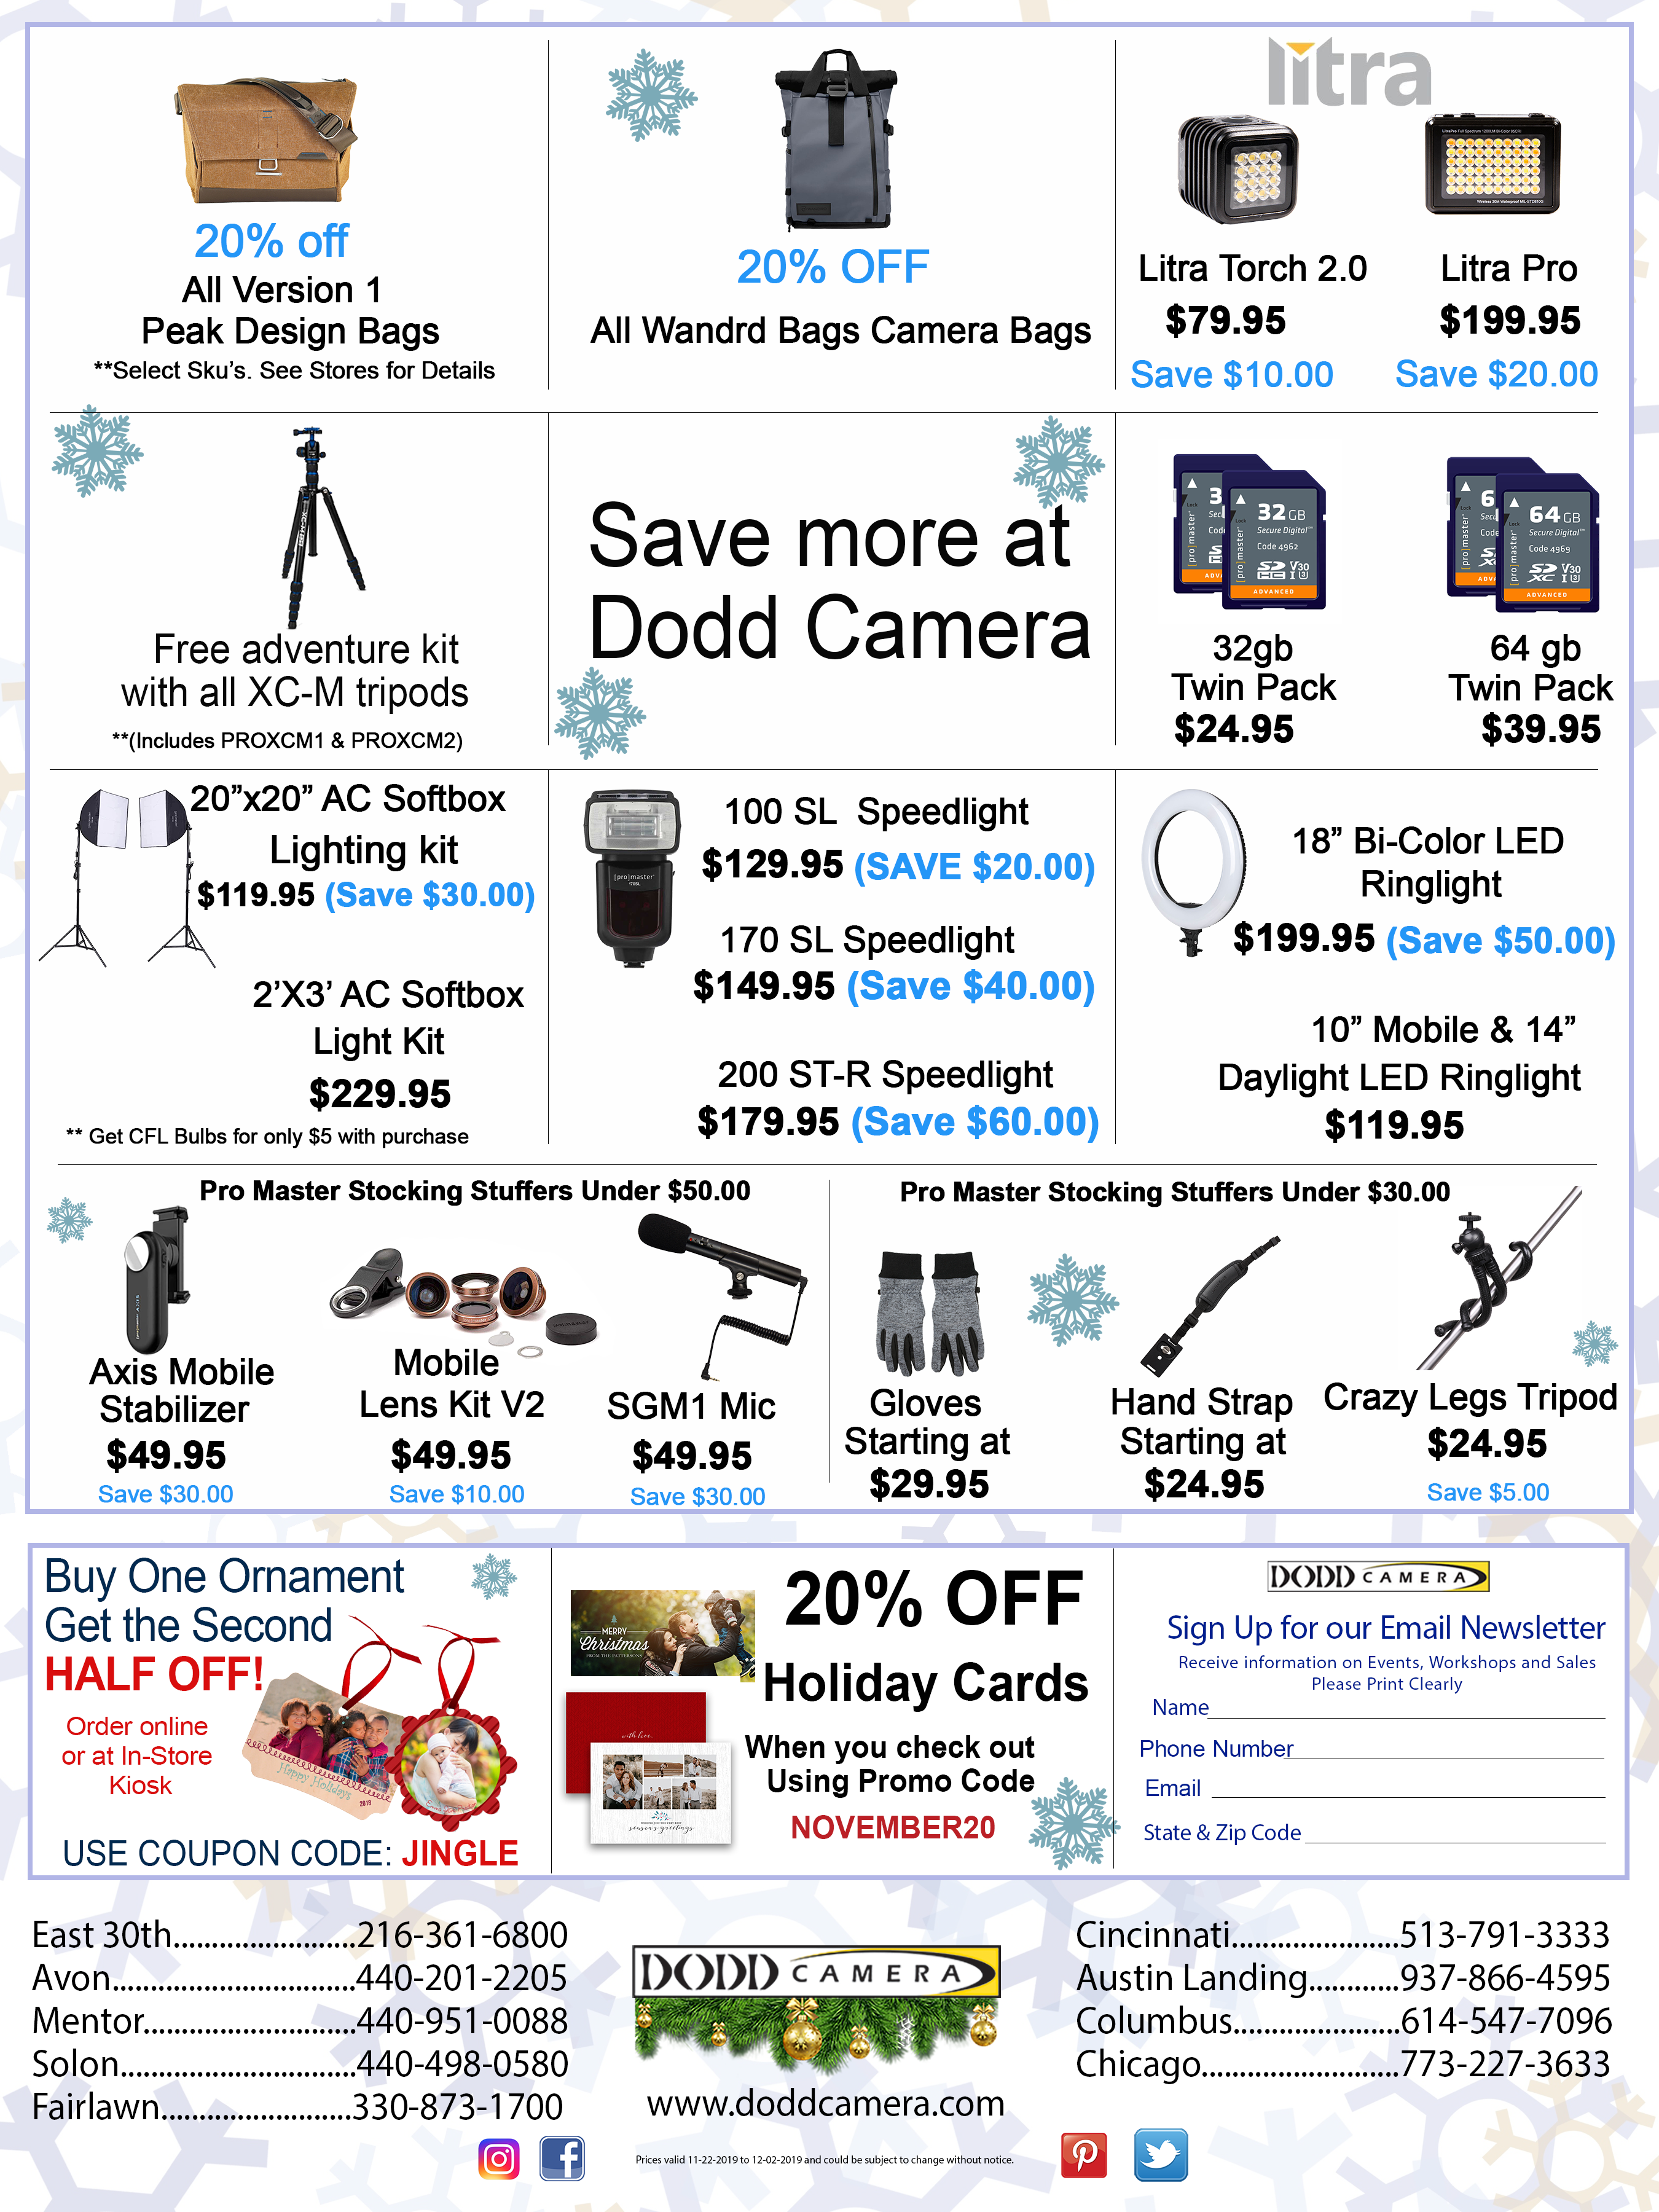 Black Friday Ad Layout-4